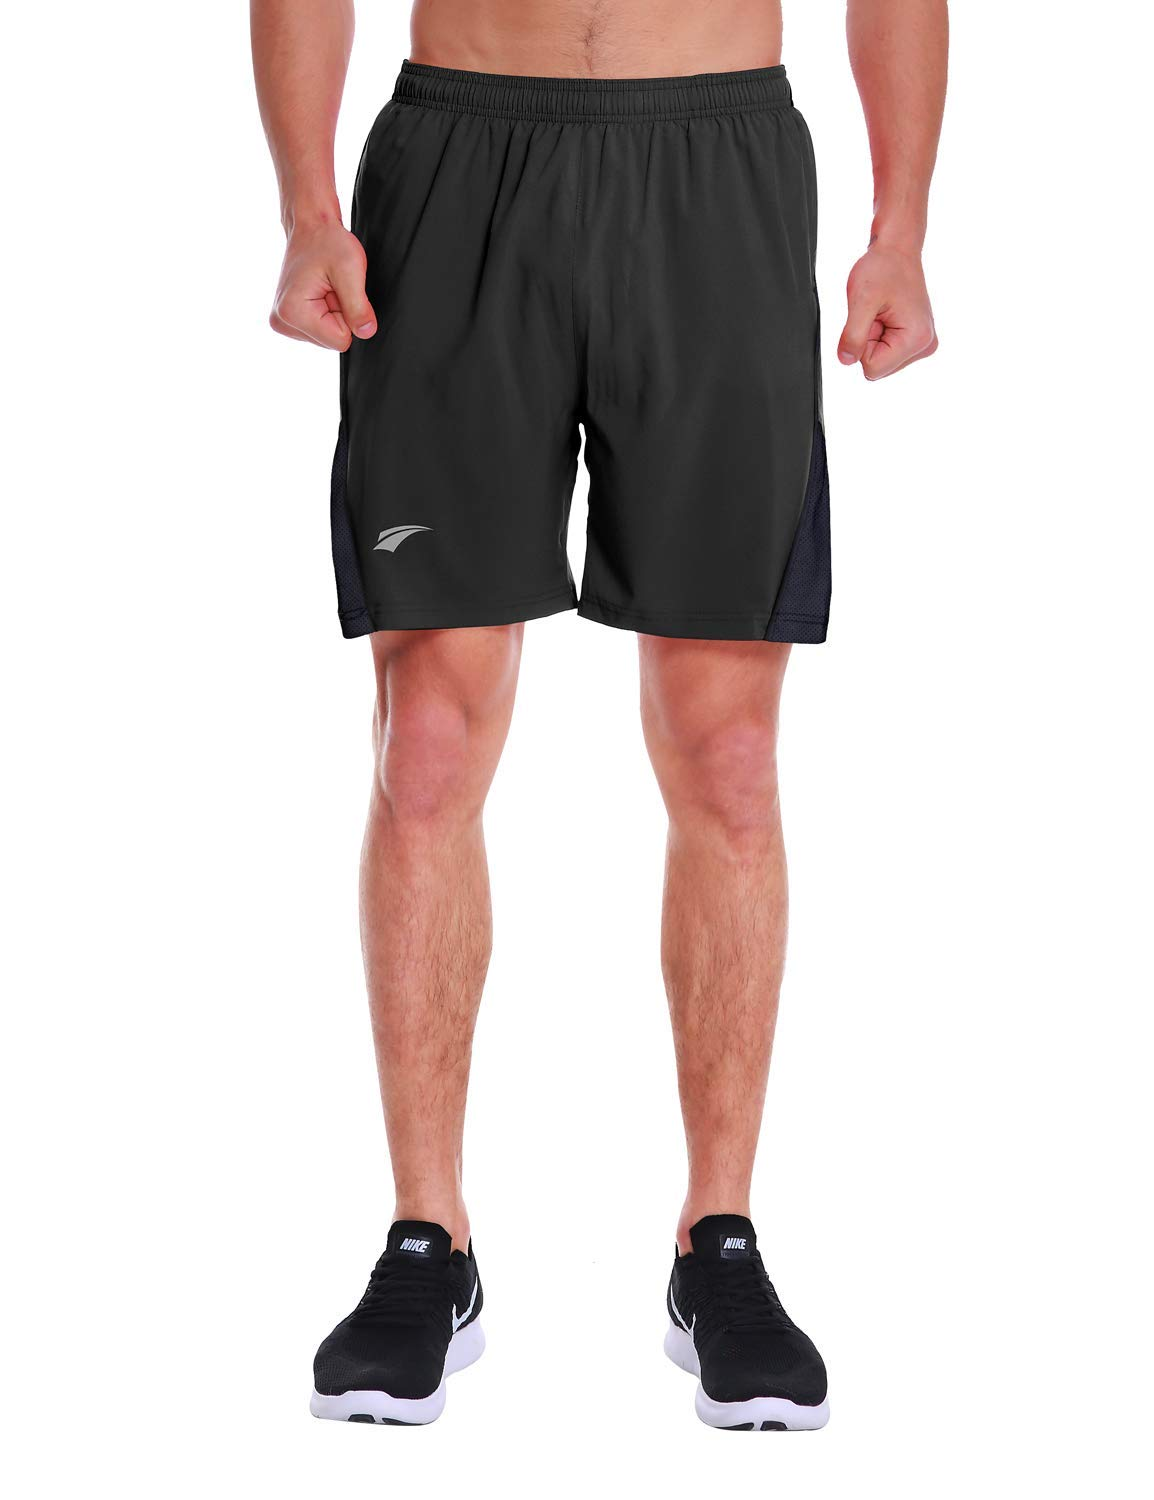 cd437ef7 EZRUN Men's 7 Inch Quick Dry Running Shorts Workout Sport Fitness Short  with Liner Zip Pocket